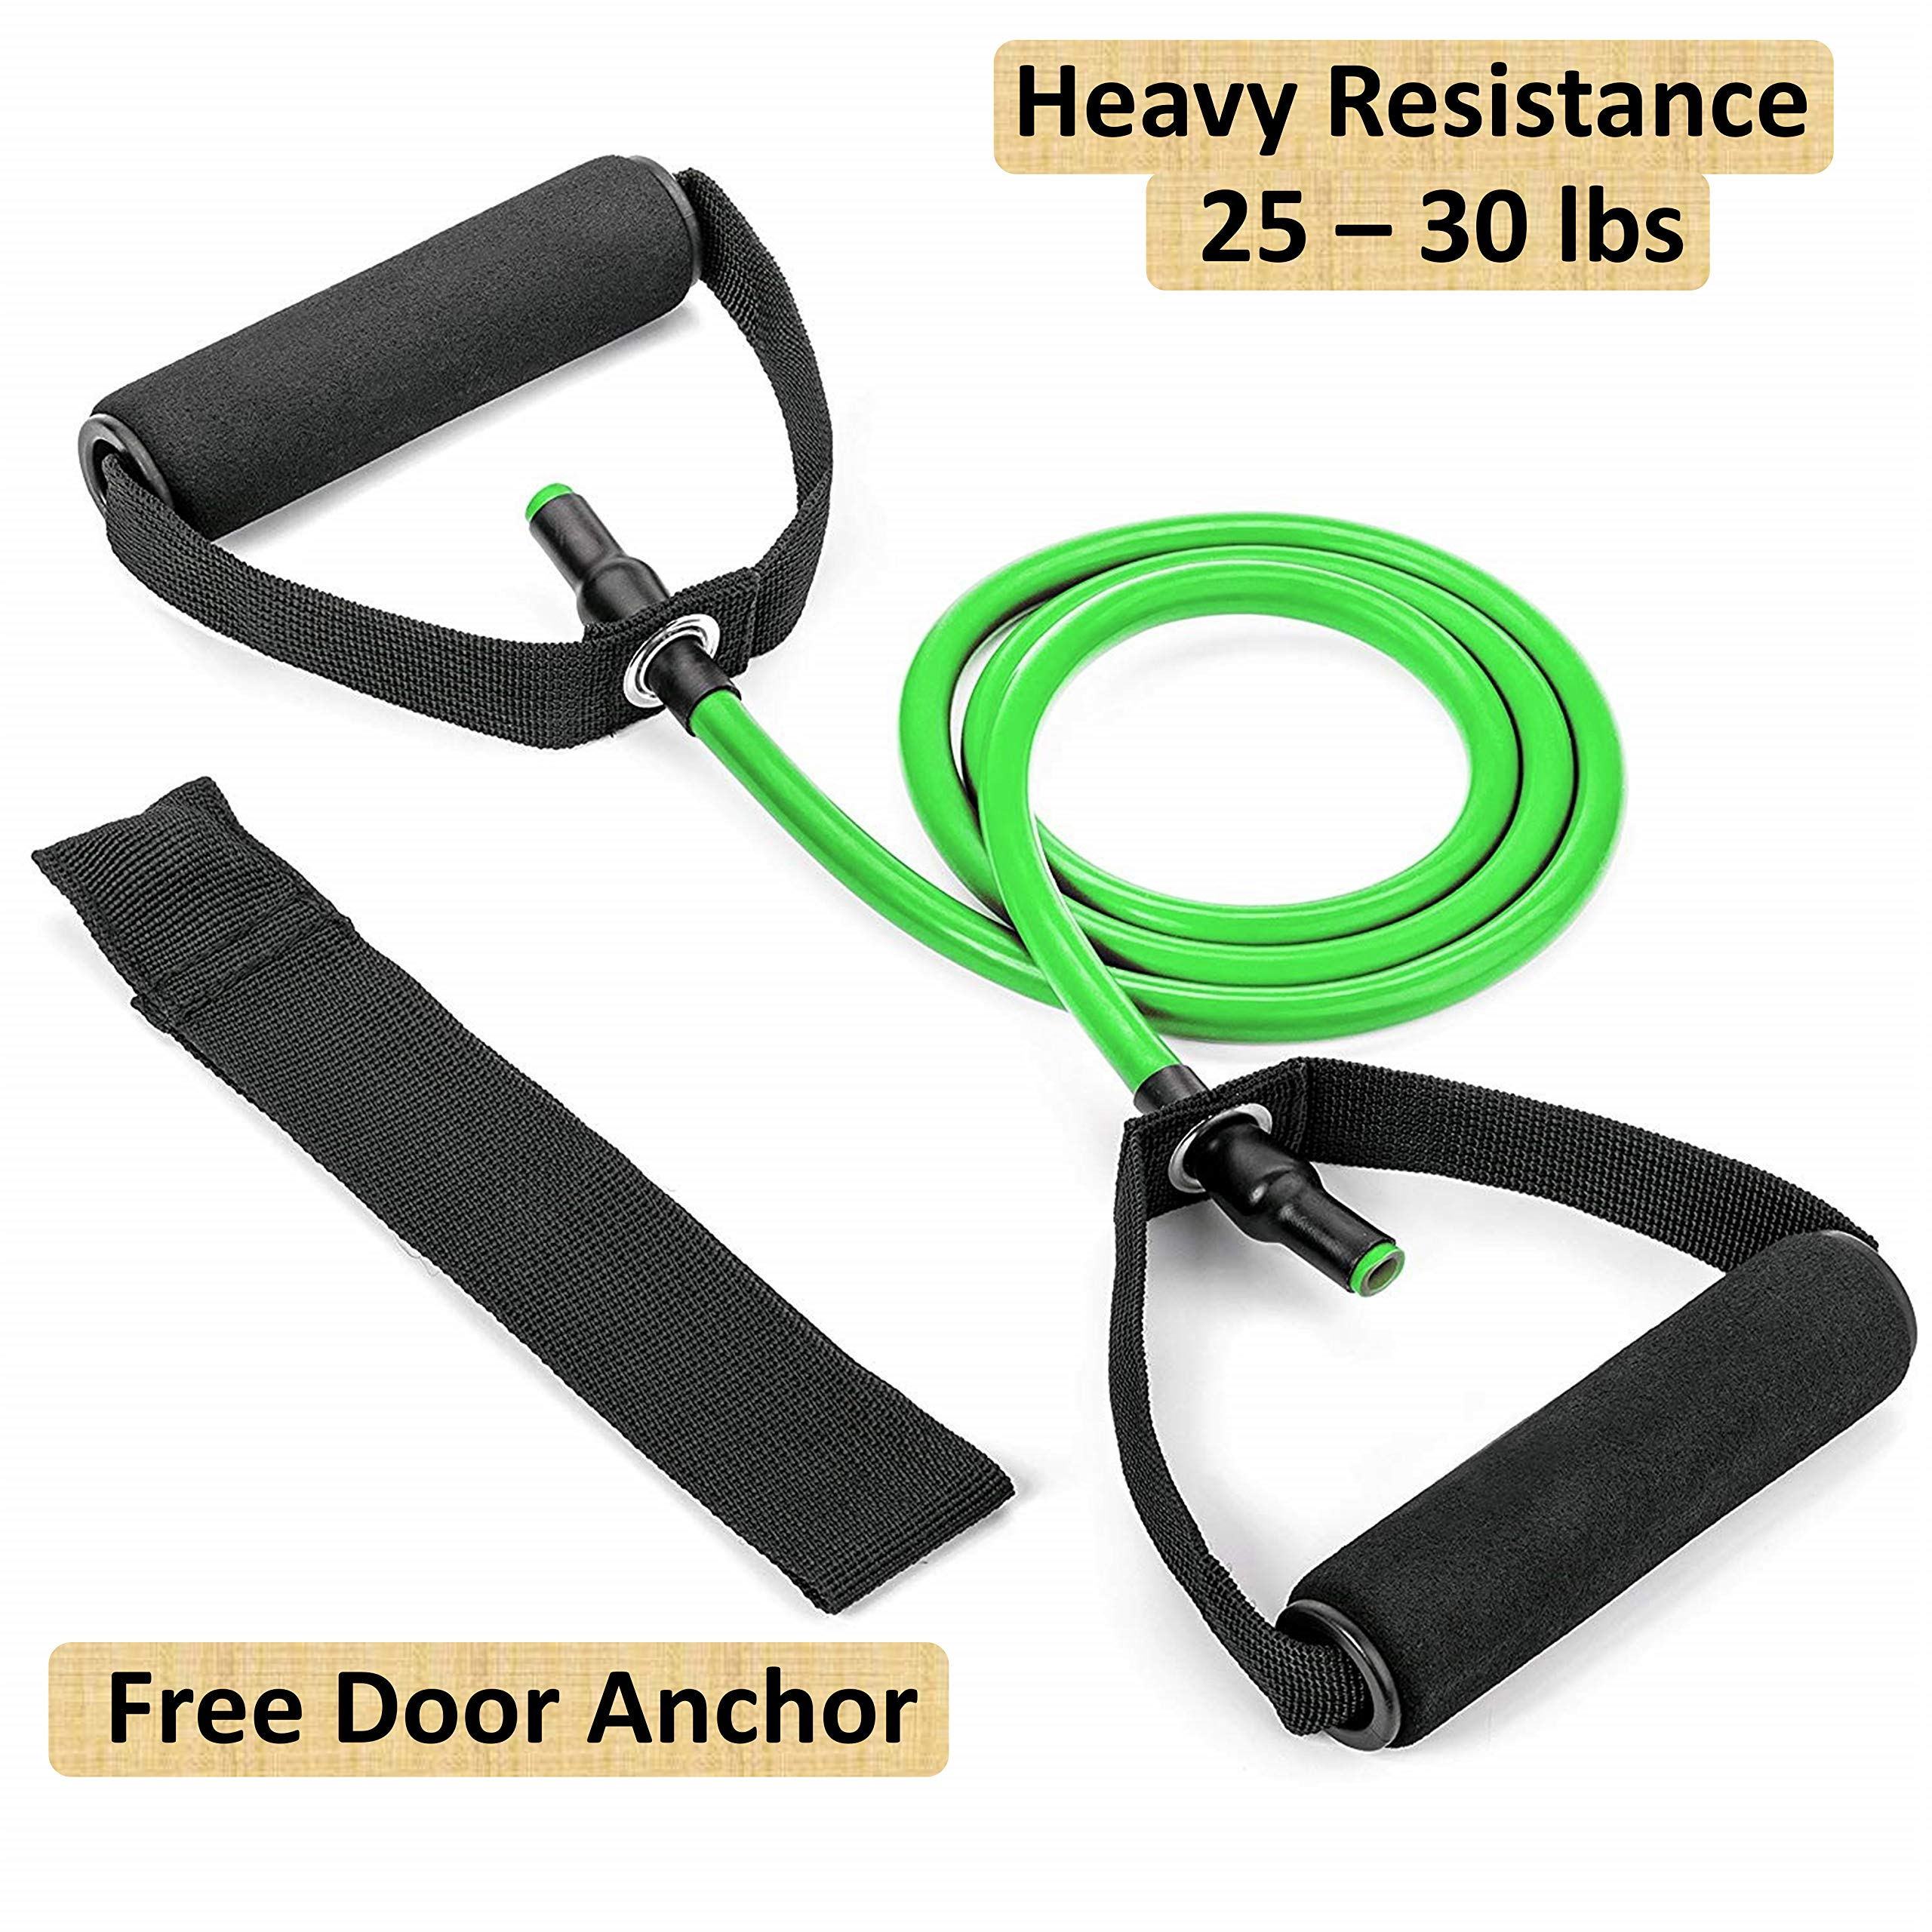 Tdas Resistance Band Stretch Latex Band Set Toning Tube for Heavy Workout Exercise Hard Light for Men Women Fitness, Physical Therapy product image